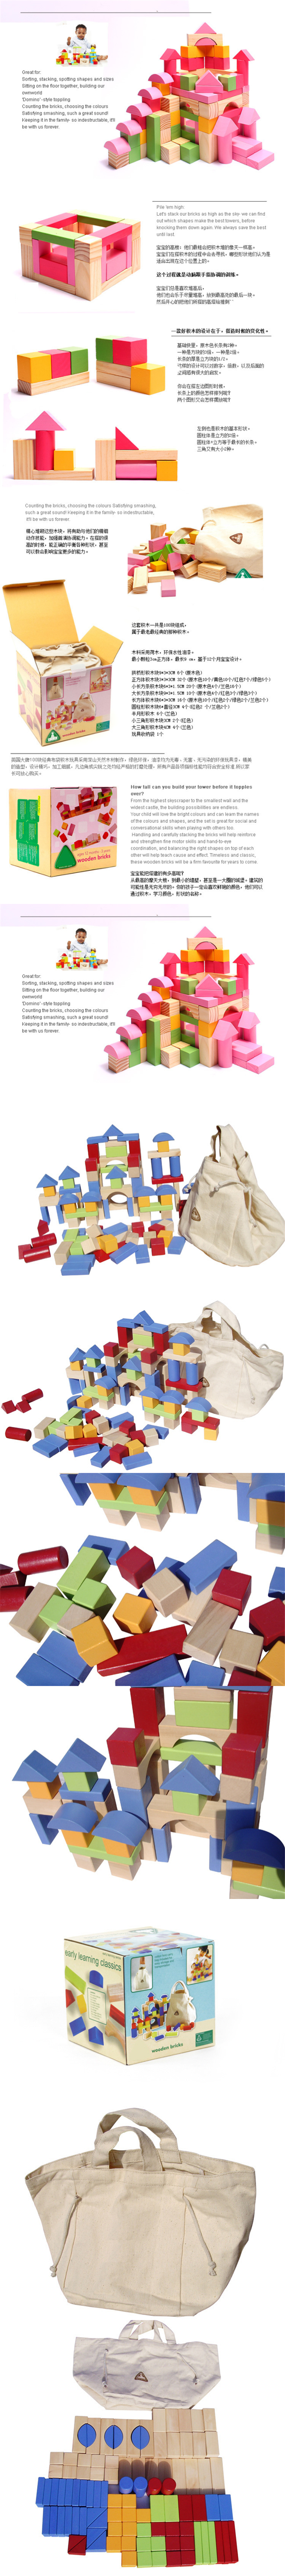 Little B House100 pieces Wooden Building Blocks Set with Carrying Bag -BT26 Pink